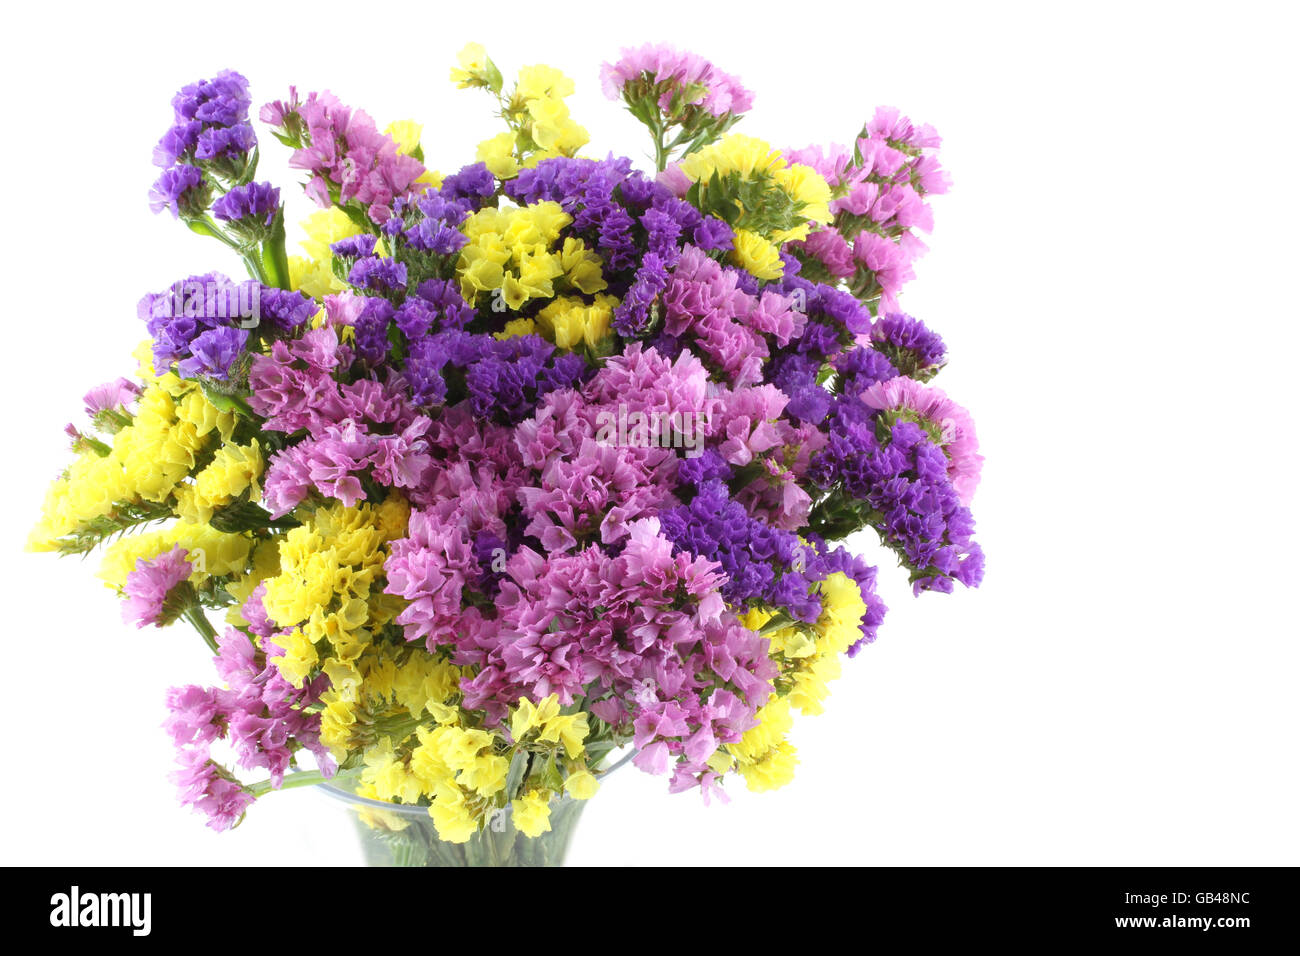 Pink, purple, yellow Statice flowers bouquet on white background ...